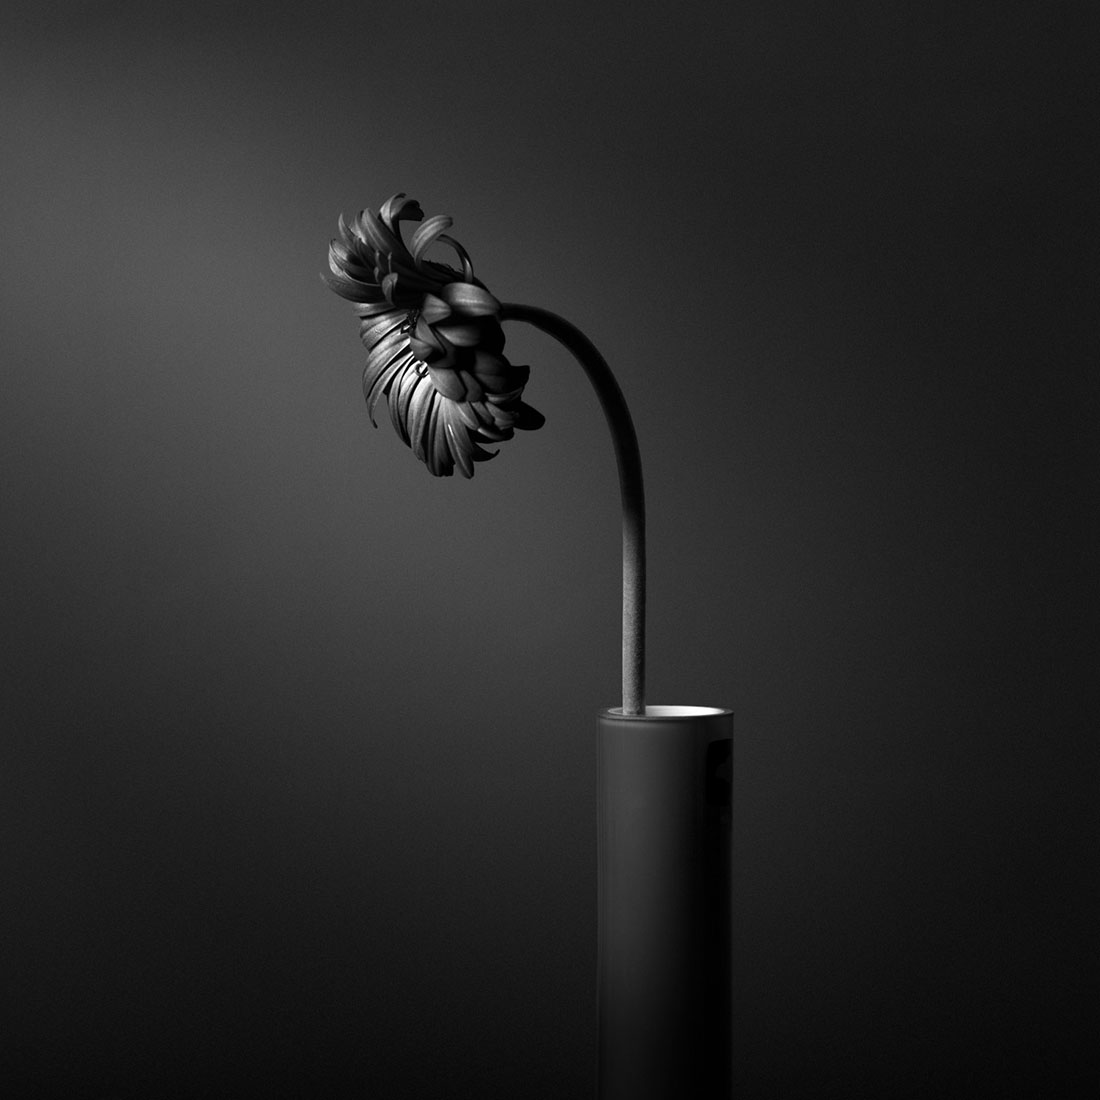 So What - Black and white floral still life photograph